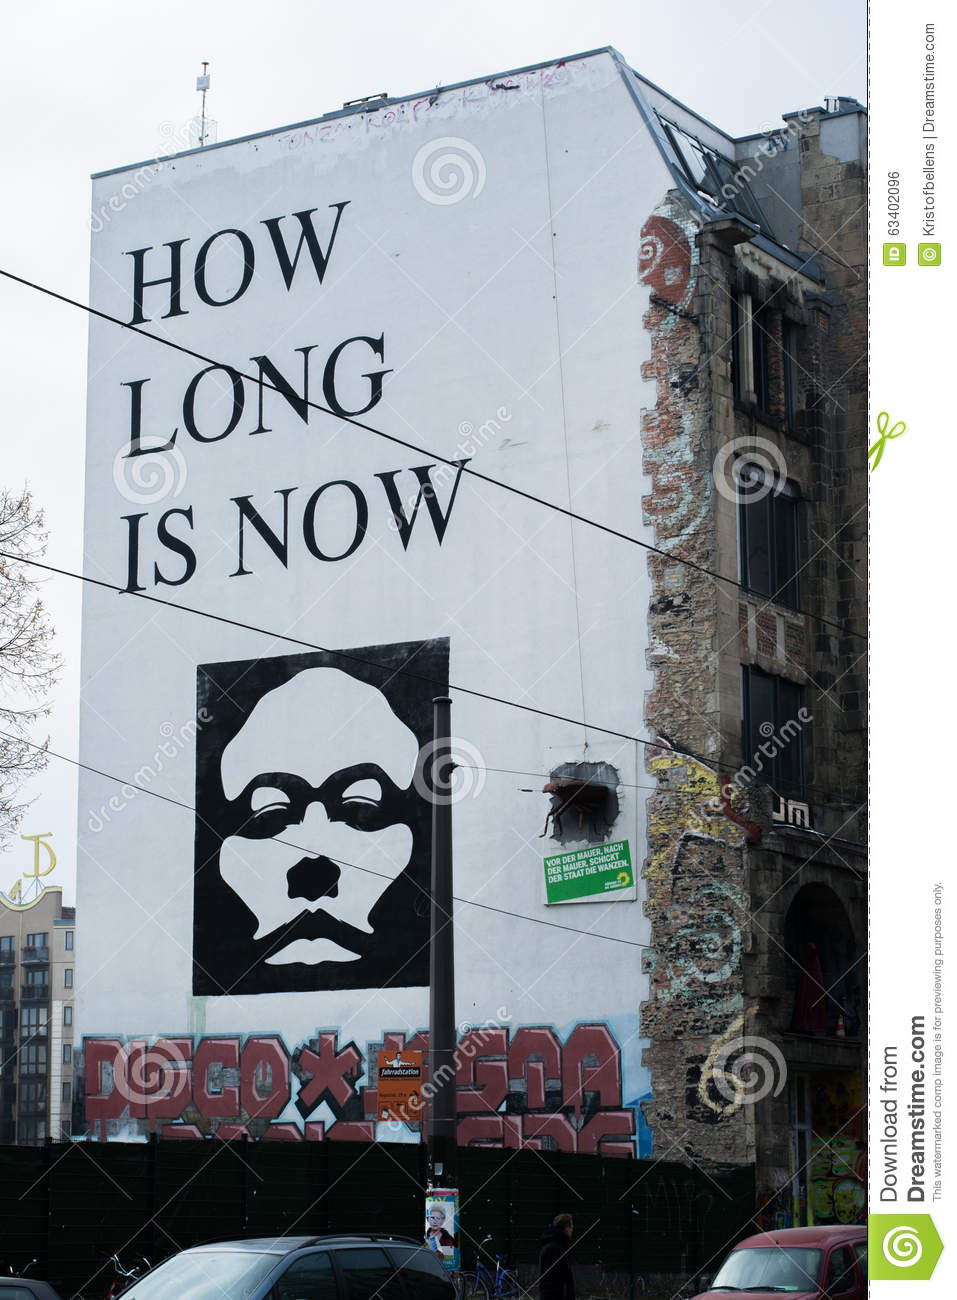 How Long Is Now Mural By Yz Editorial Photo  Image 63402096. Transcribe Audio To Text Audi Service Chicago. Cheap Online Colleges That Accept Financial Aid. Accredited Instant Degrees What Does A Rn Do. Debt Consolidation Companies Bbb. Teacher Certification Classes. Neurological Assessment Form. Water Softening Service National Savings Rate. Masters Certificate In Business Analysis